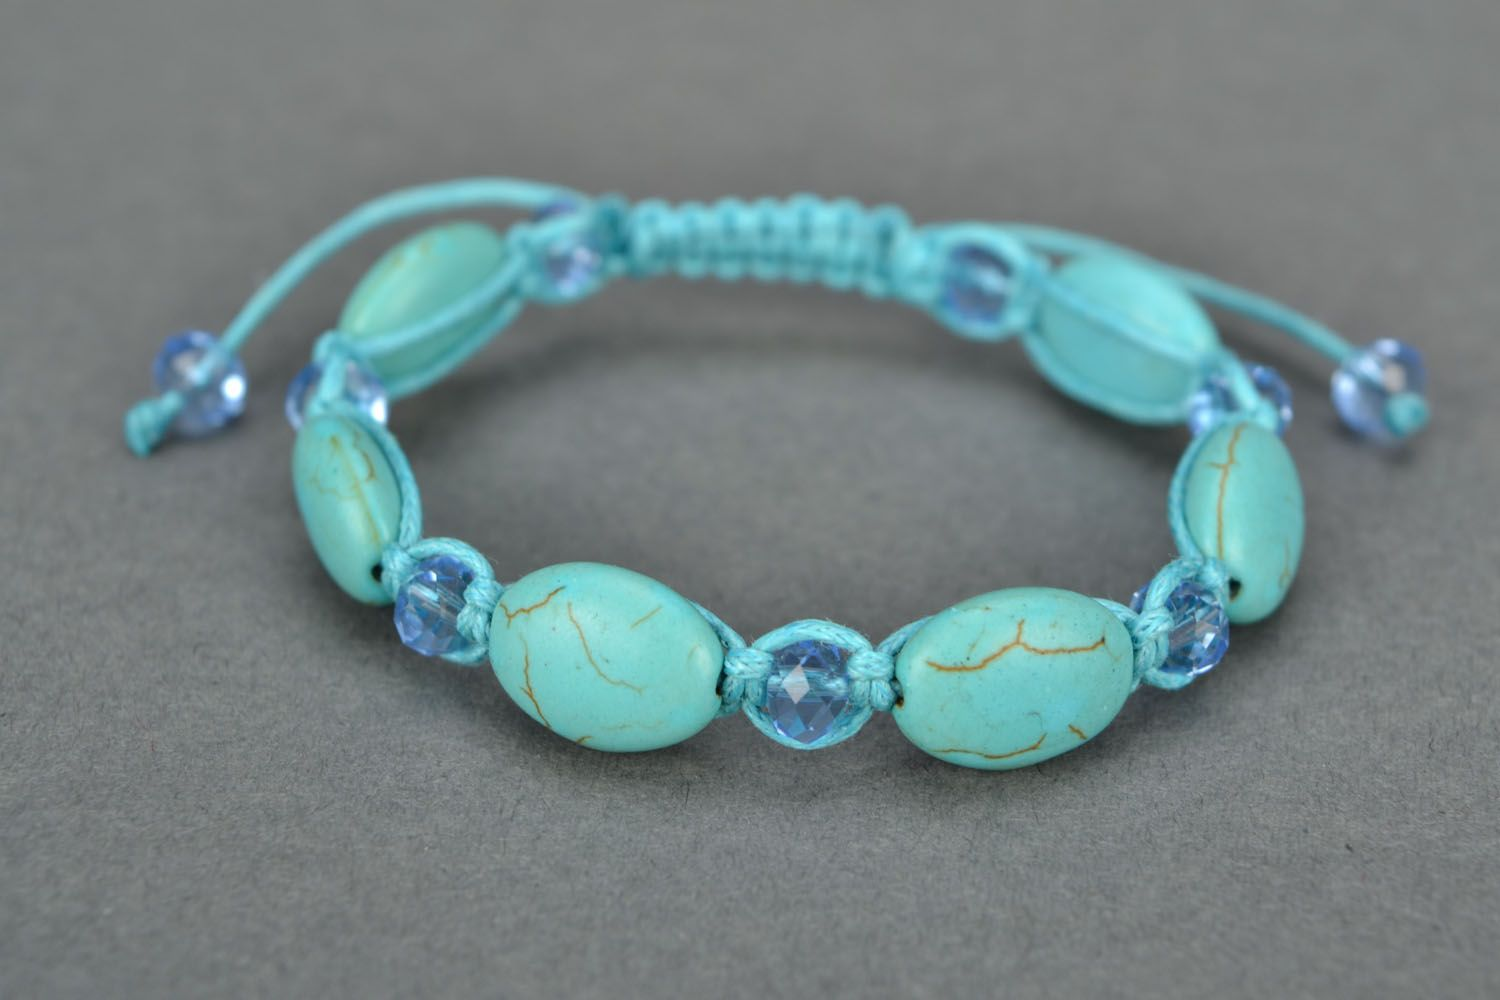 Bracelet woven of beads and cord photo 3